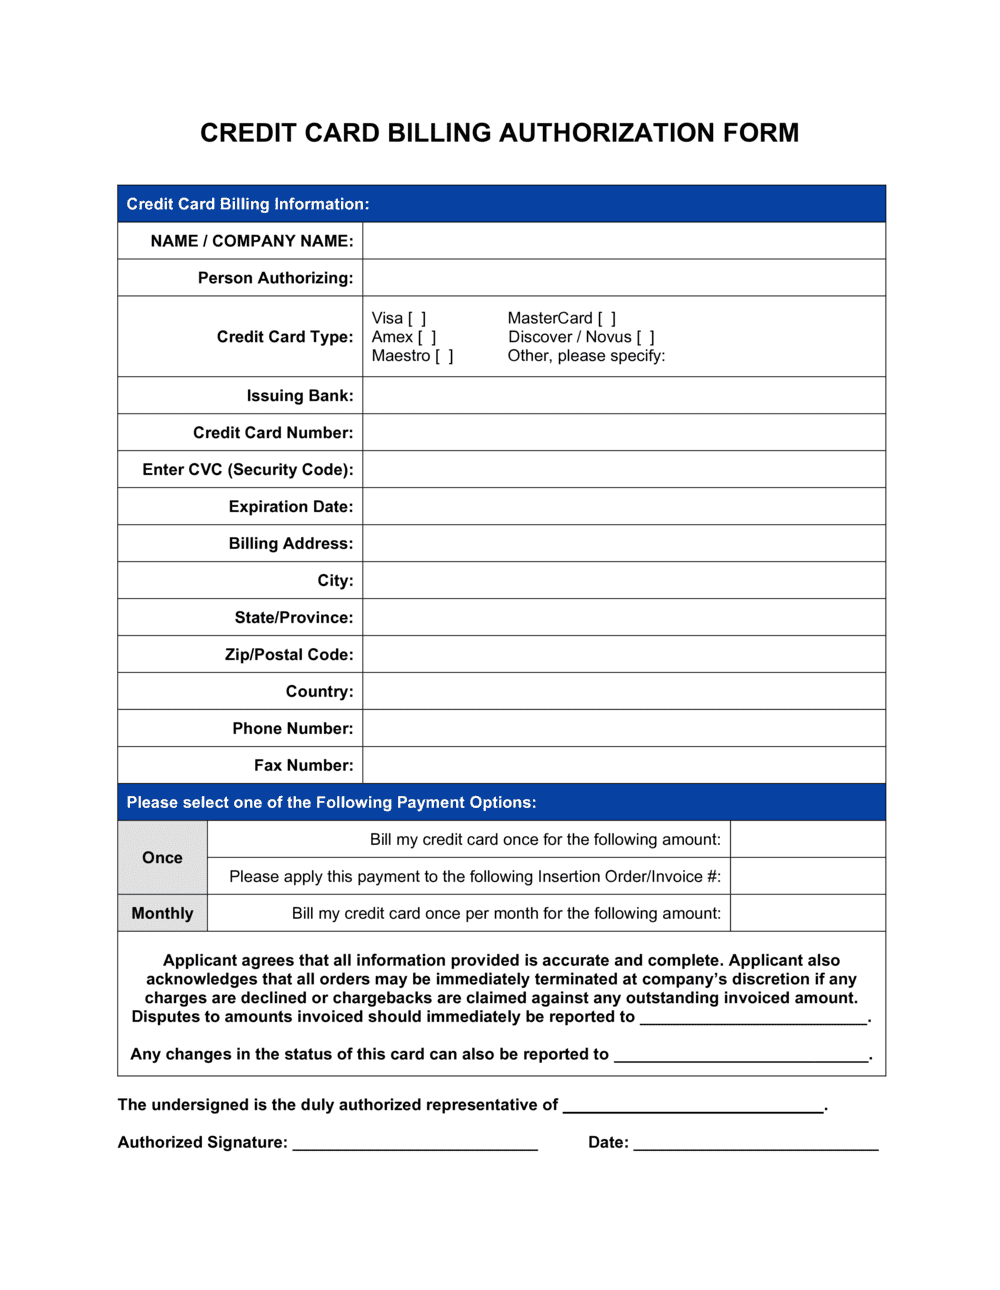 Business-in-a-Box's Credit Card Billing Authorization Form Template